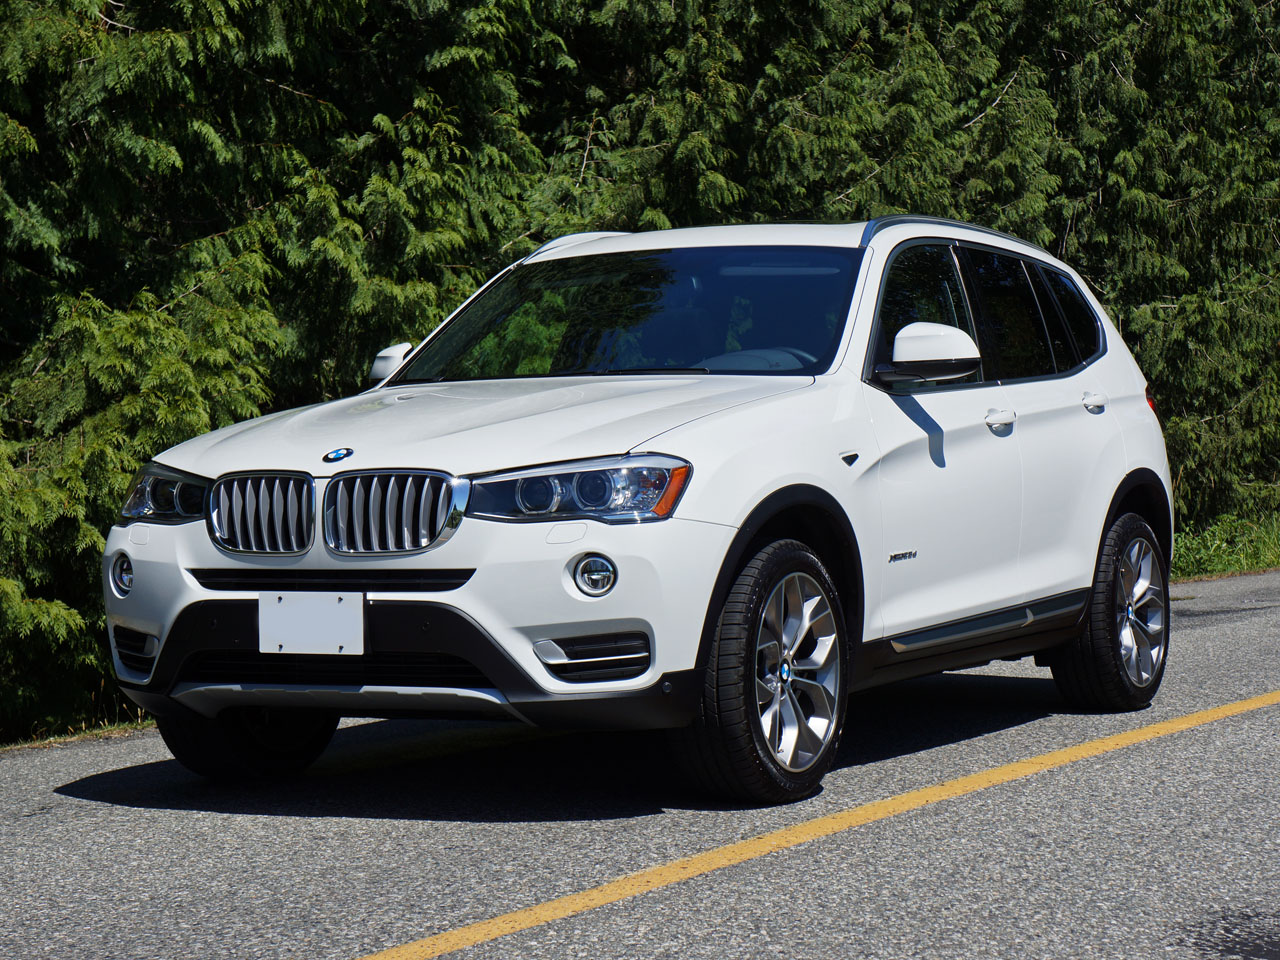 2015 bmw x3 xdrive28d road test review carcostcanada. Black Bedroom Furniture Sets. Home Design Ideas